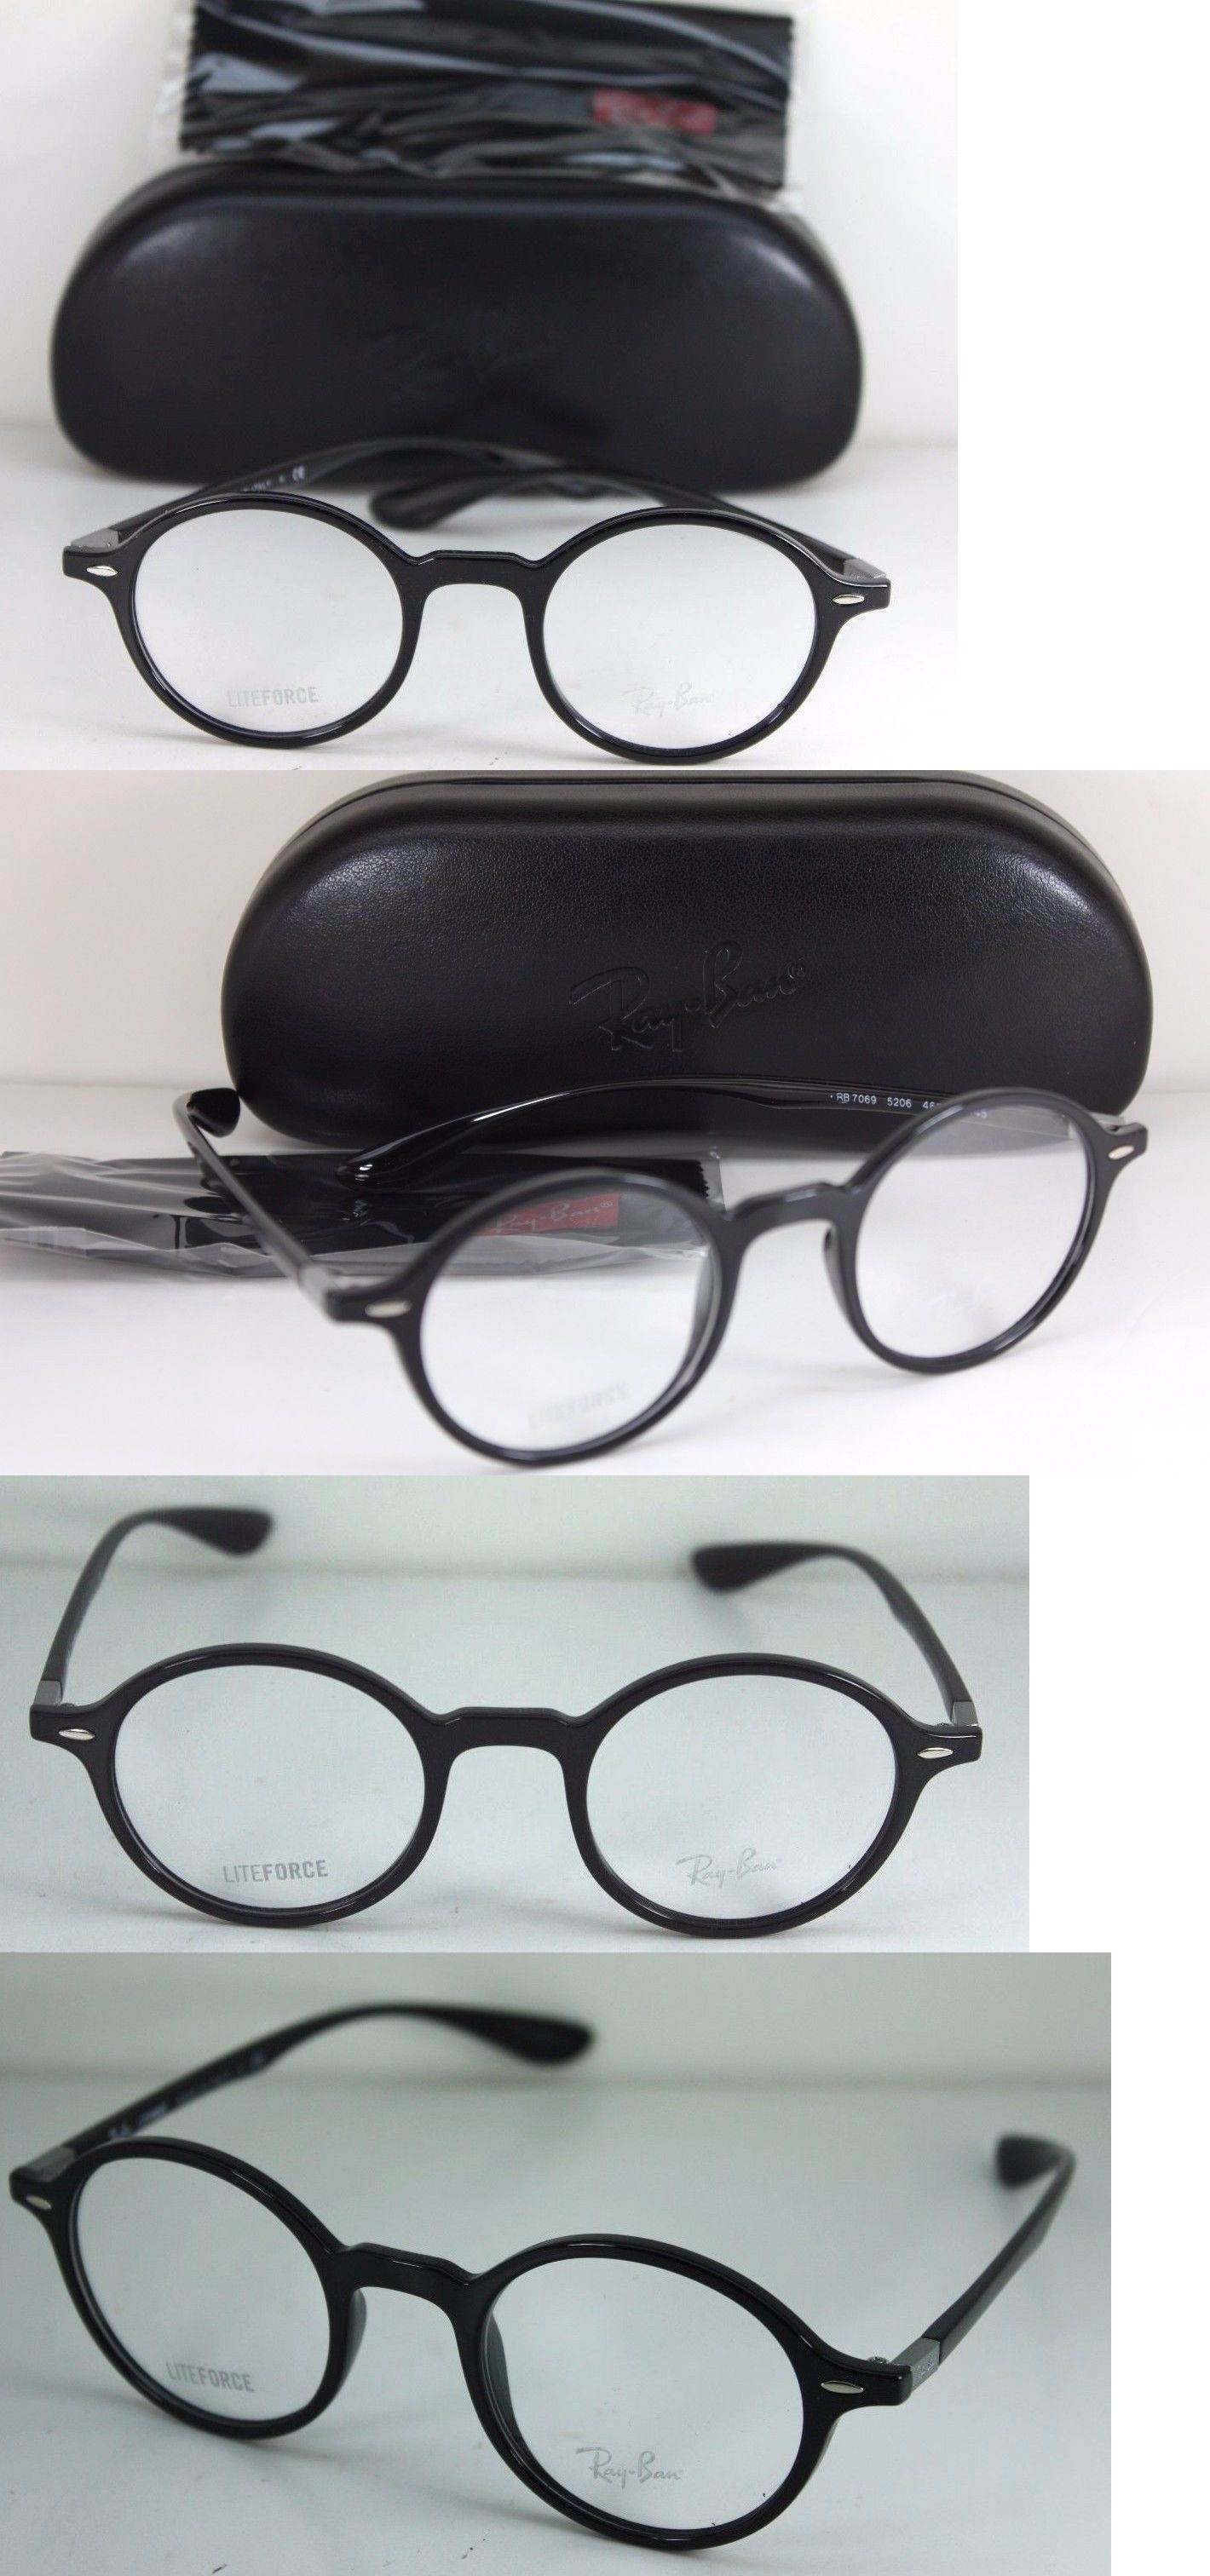 787d1814144 Fashion Eyewear Clear Glasses 179244  New Authentic Ray Ban Rb 7069 5206  Black Round Optical Eyeglass Rx Frame 46Mm -  BUY IT NOW ONLY   84.15 on  eBay!